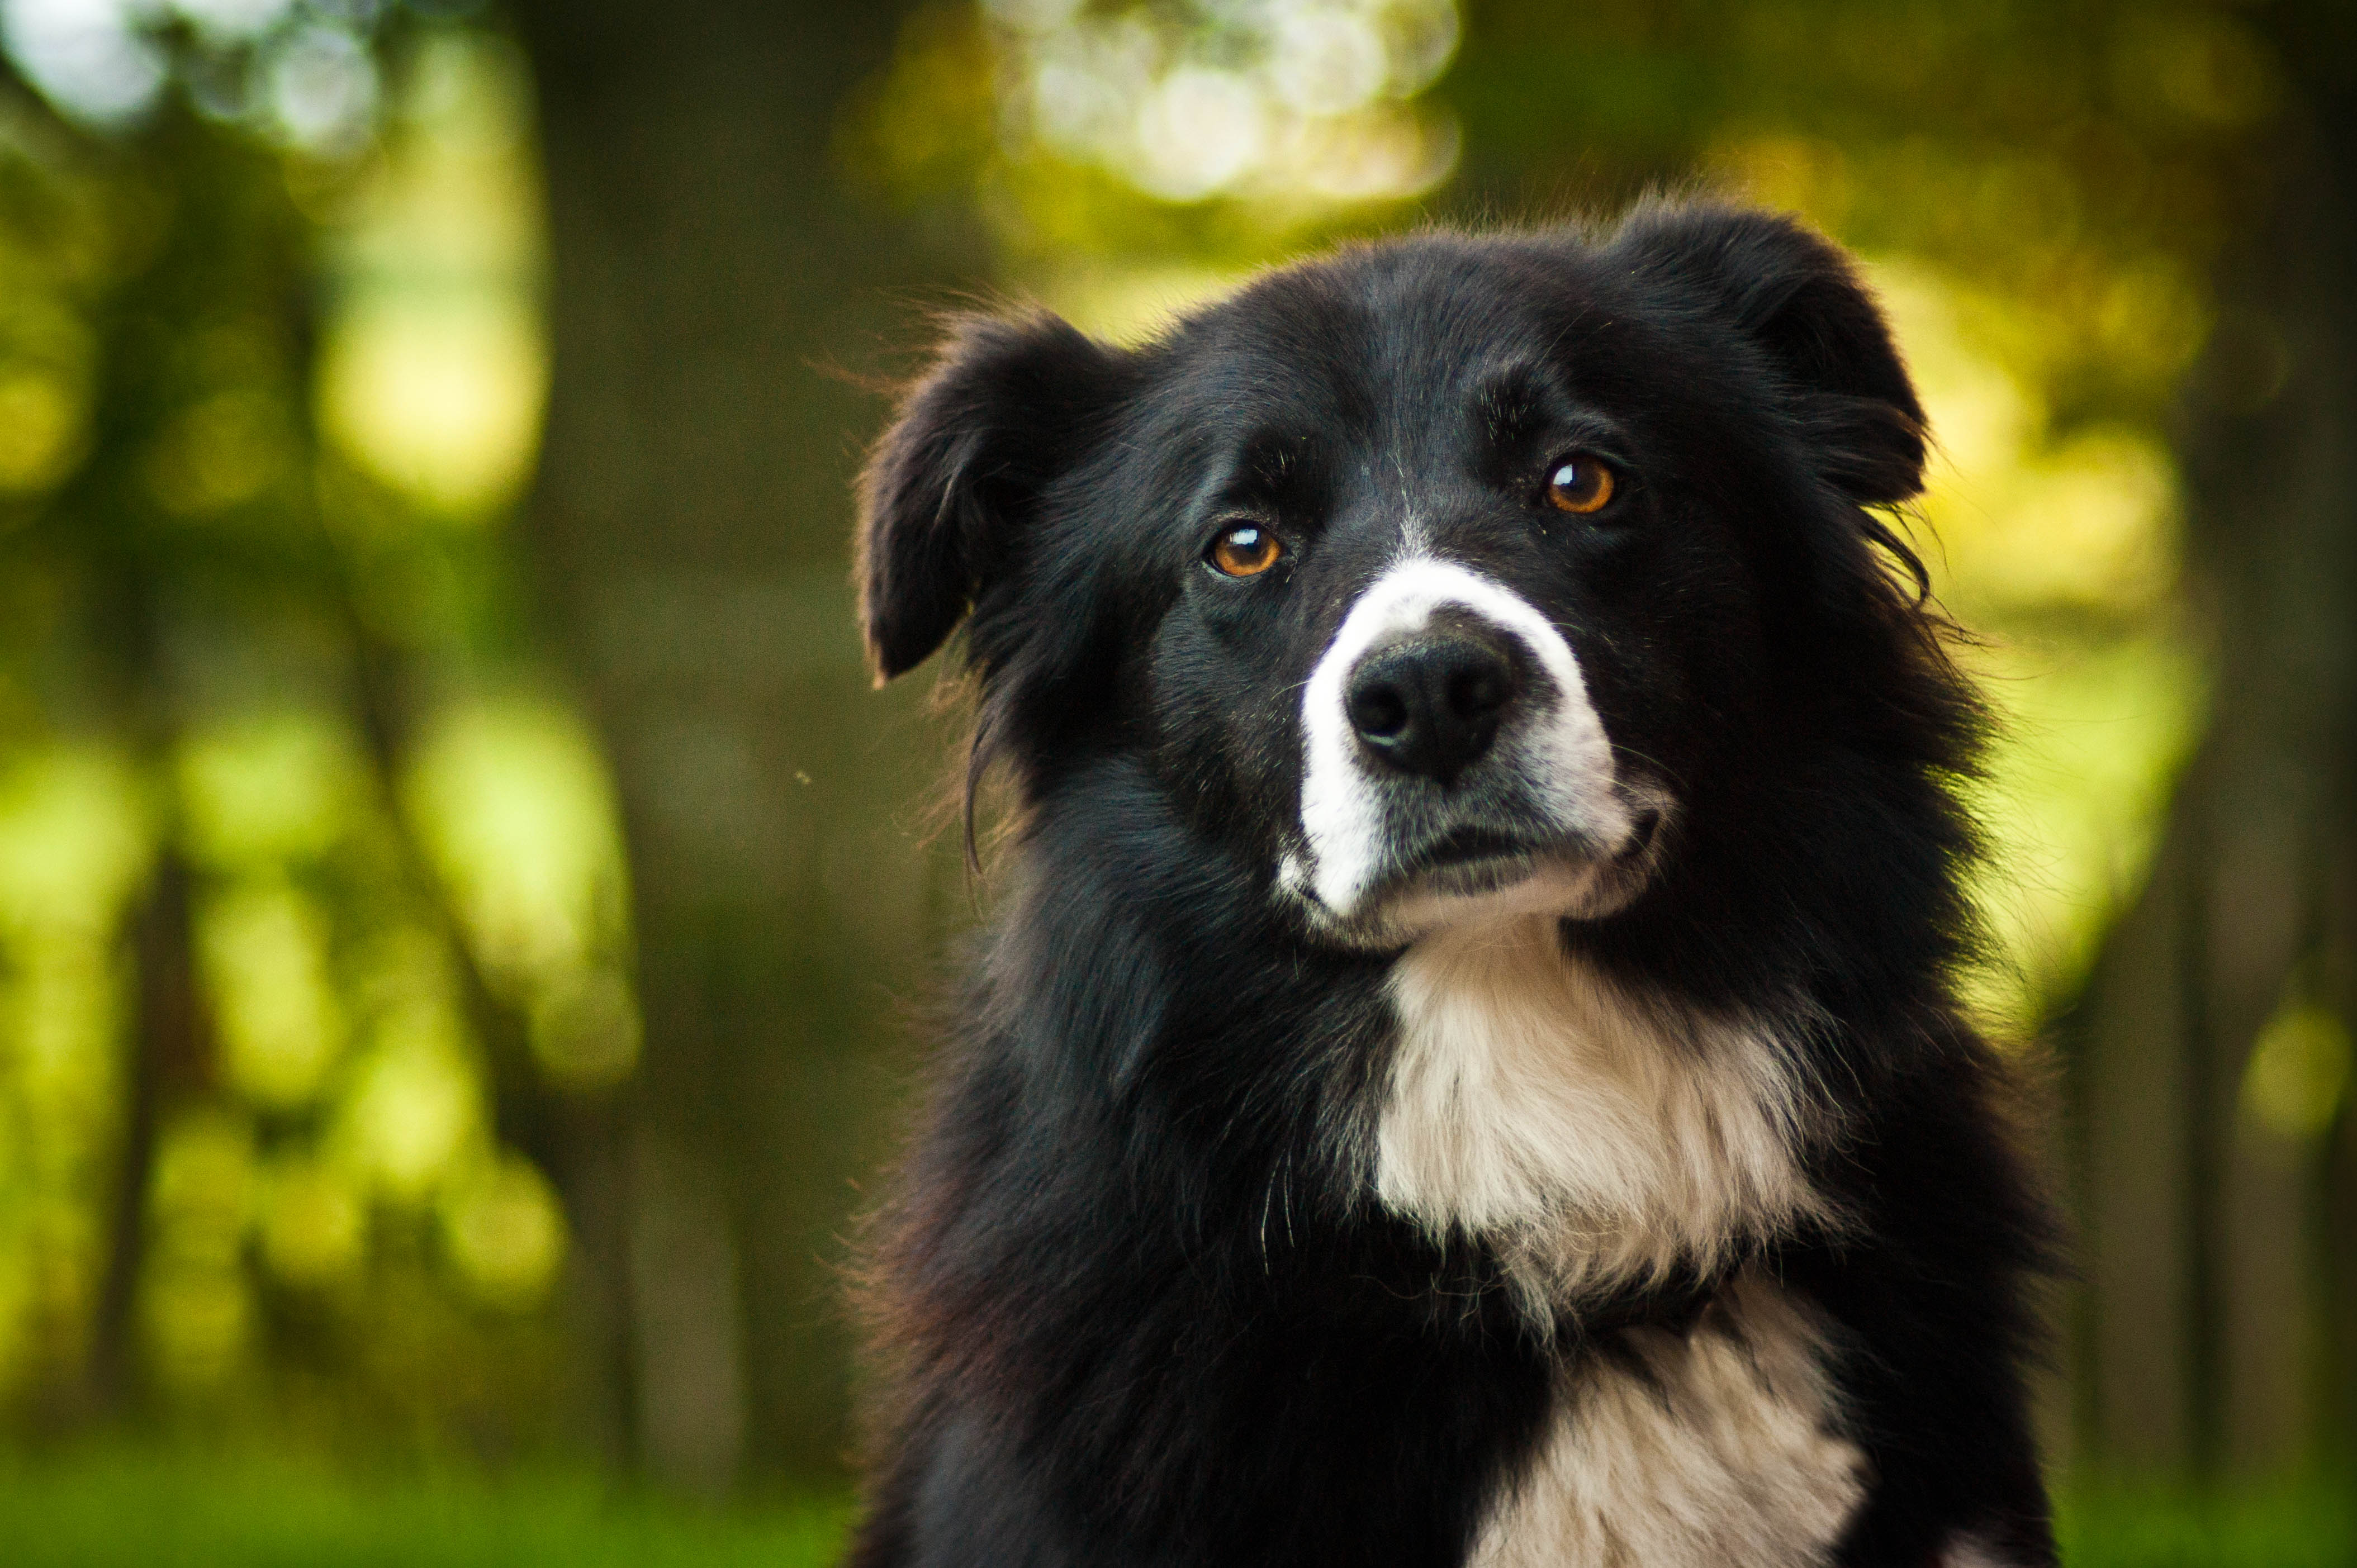 A collie with a quizzical look